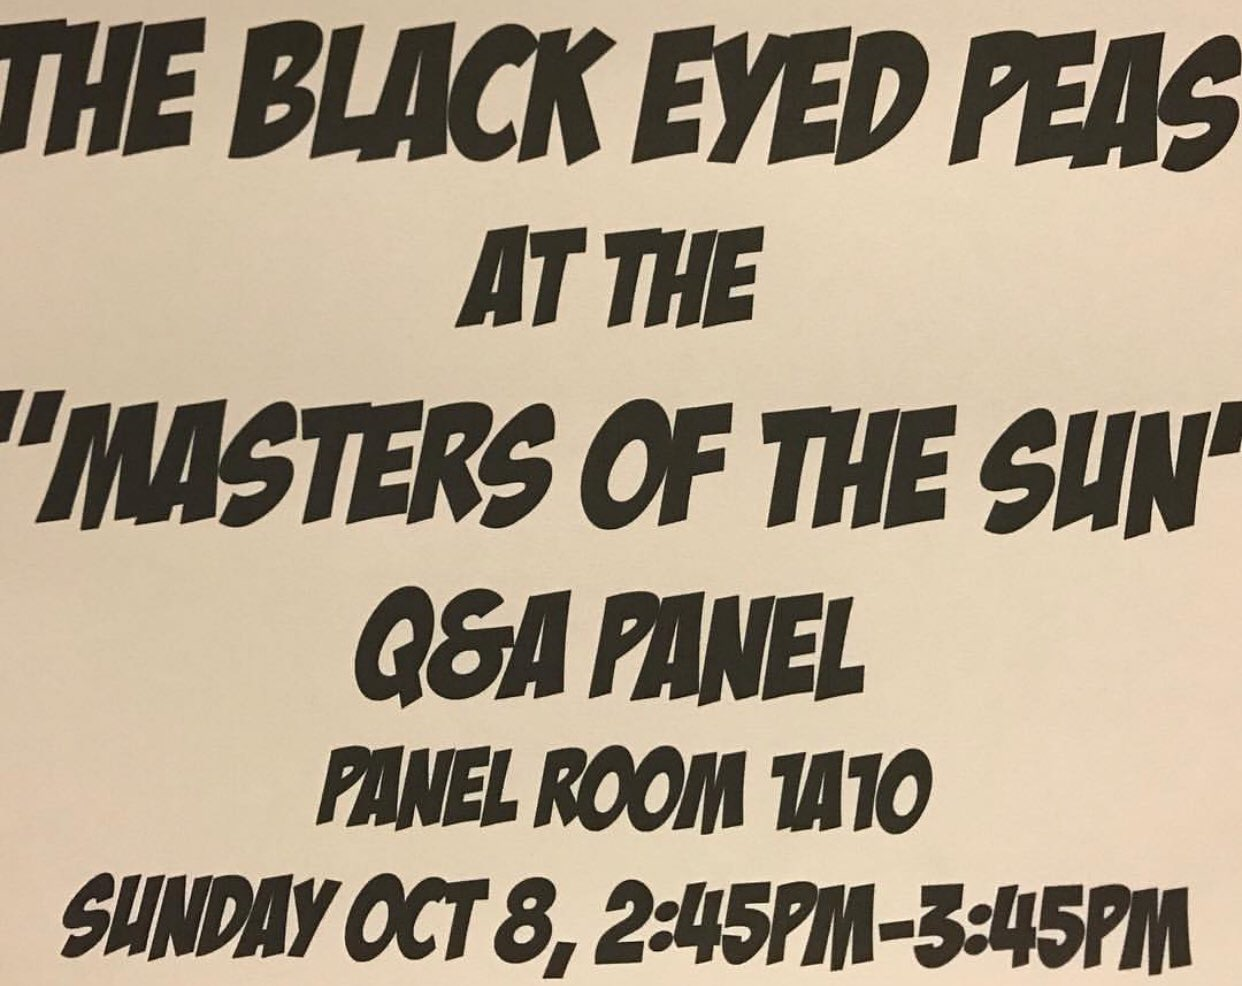 #NYCC — come see us at the  #MastersOfTheSun Q&A with @DamionScott2. Today at 2:45p. See you there. https://t.co/latEL1FnKd